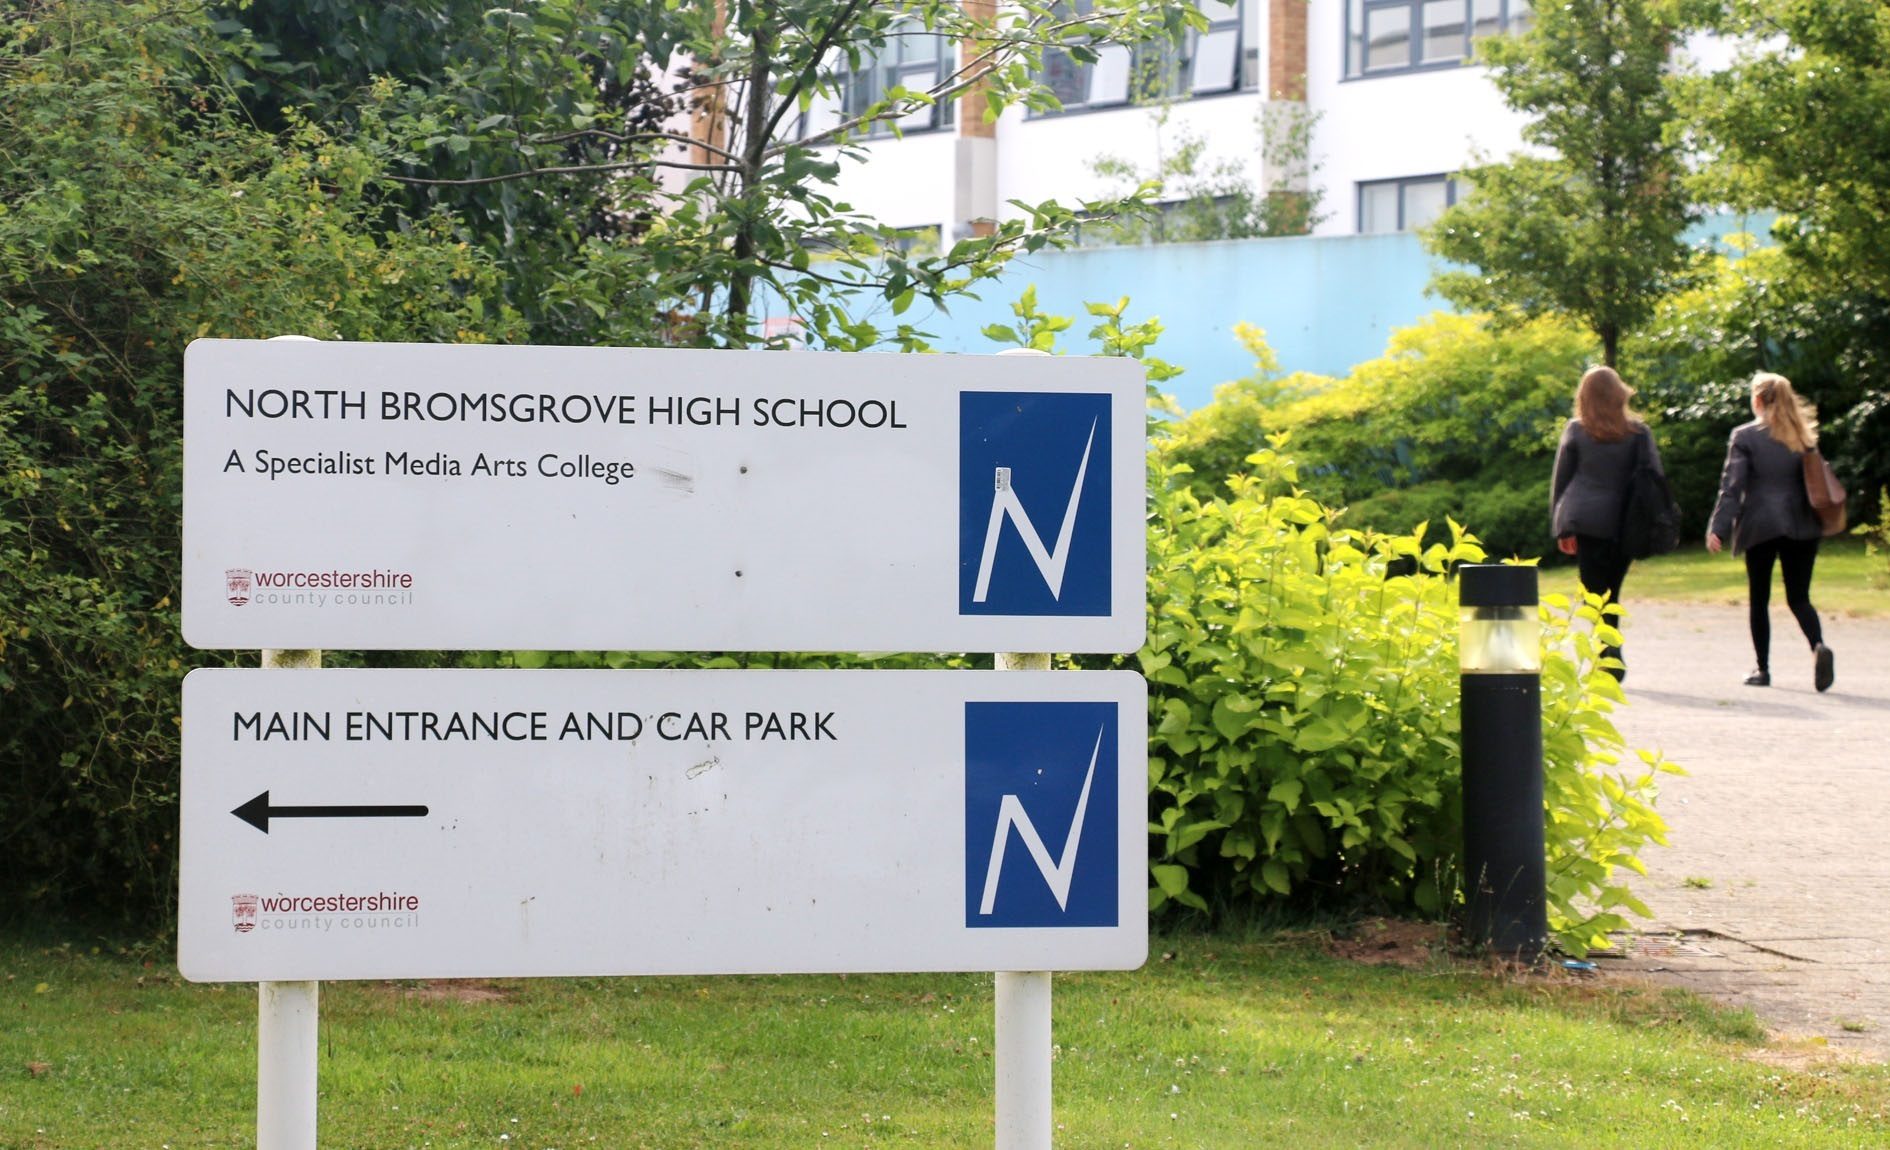 Students say staff changes at North Bromsgrove High School have affected their education